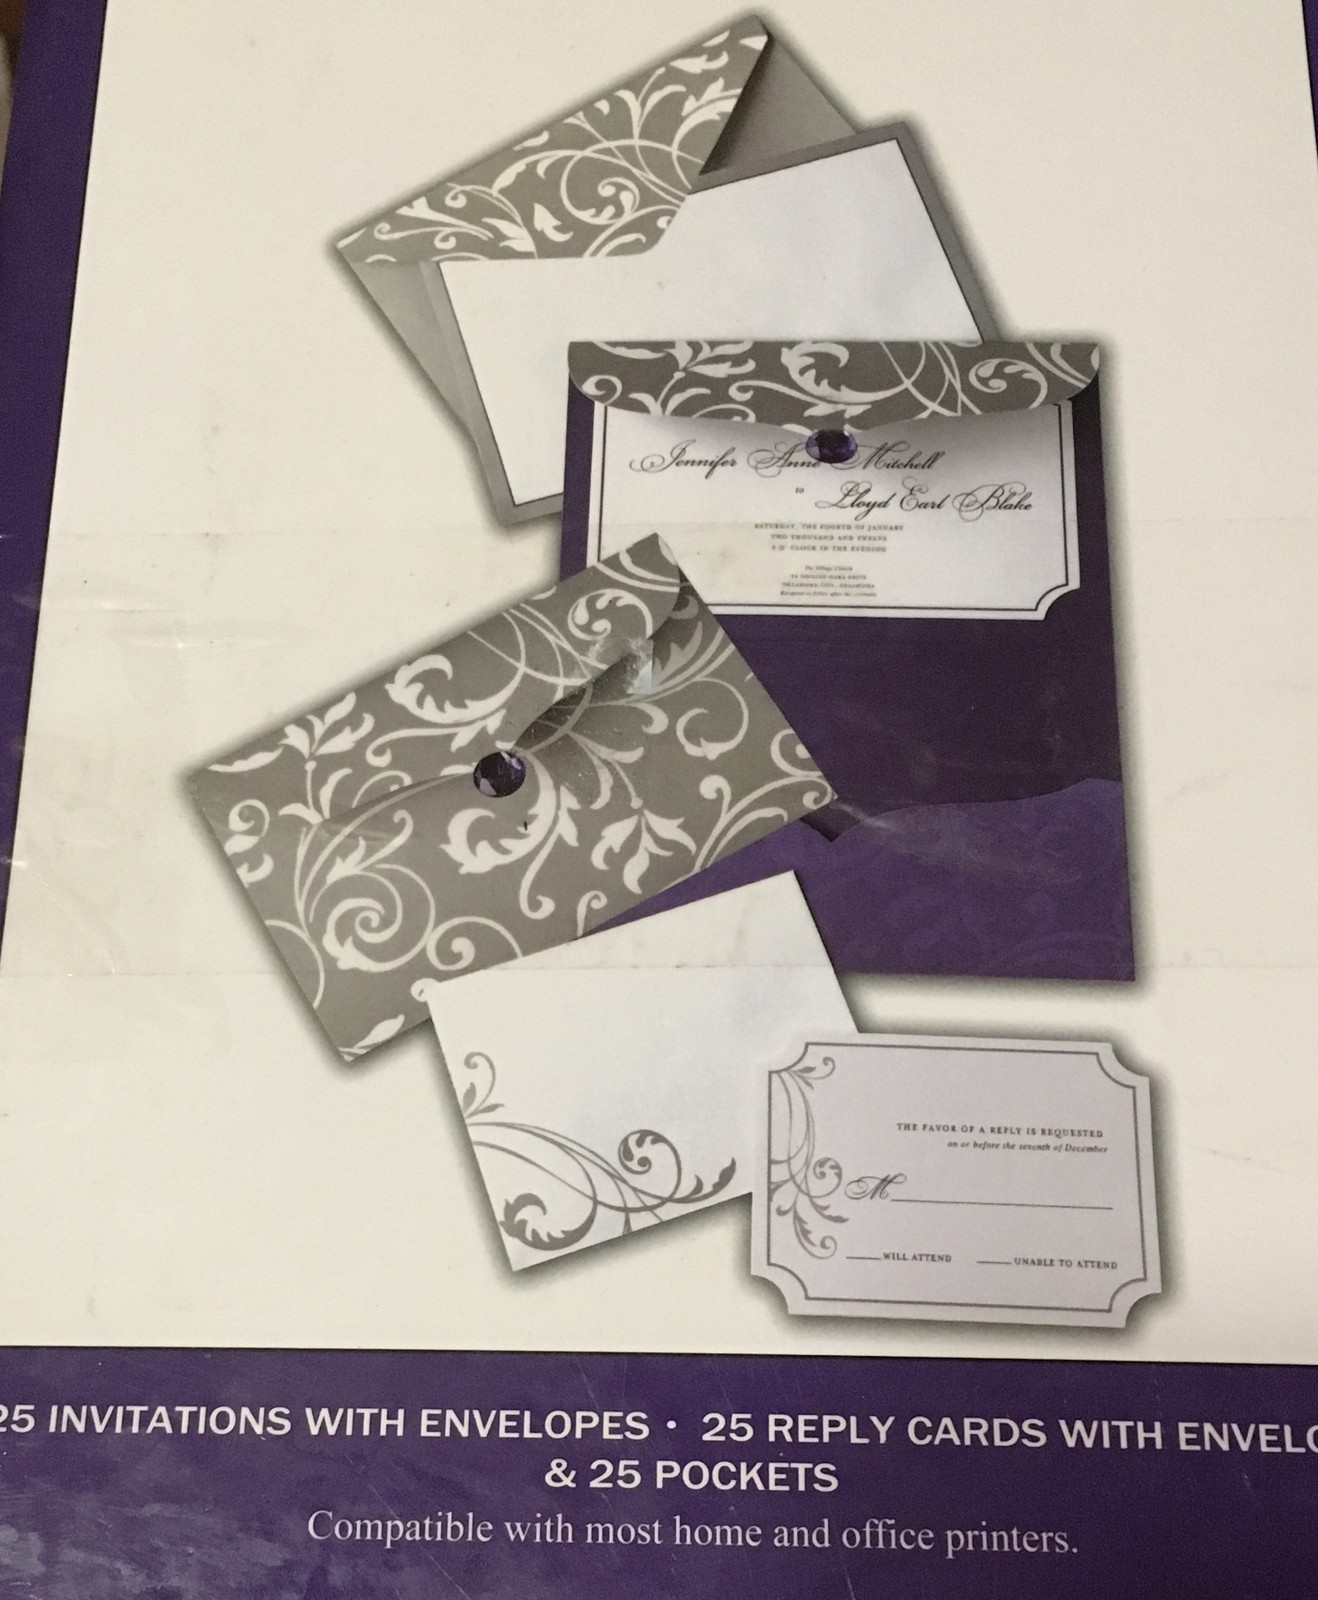 His & Hers Wedding Invitations Complete Gray & White Floral Purple Accent 25 Box